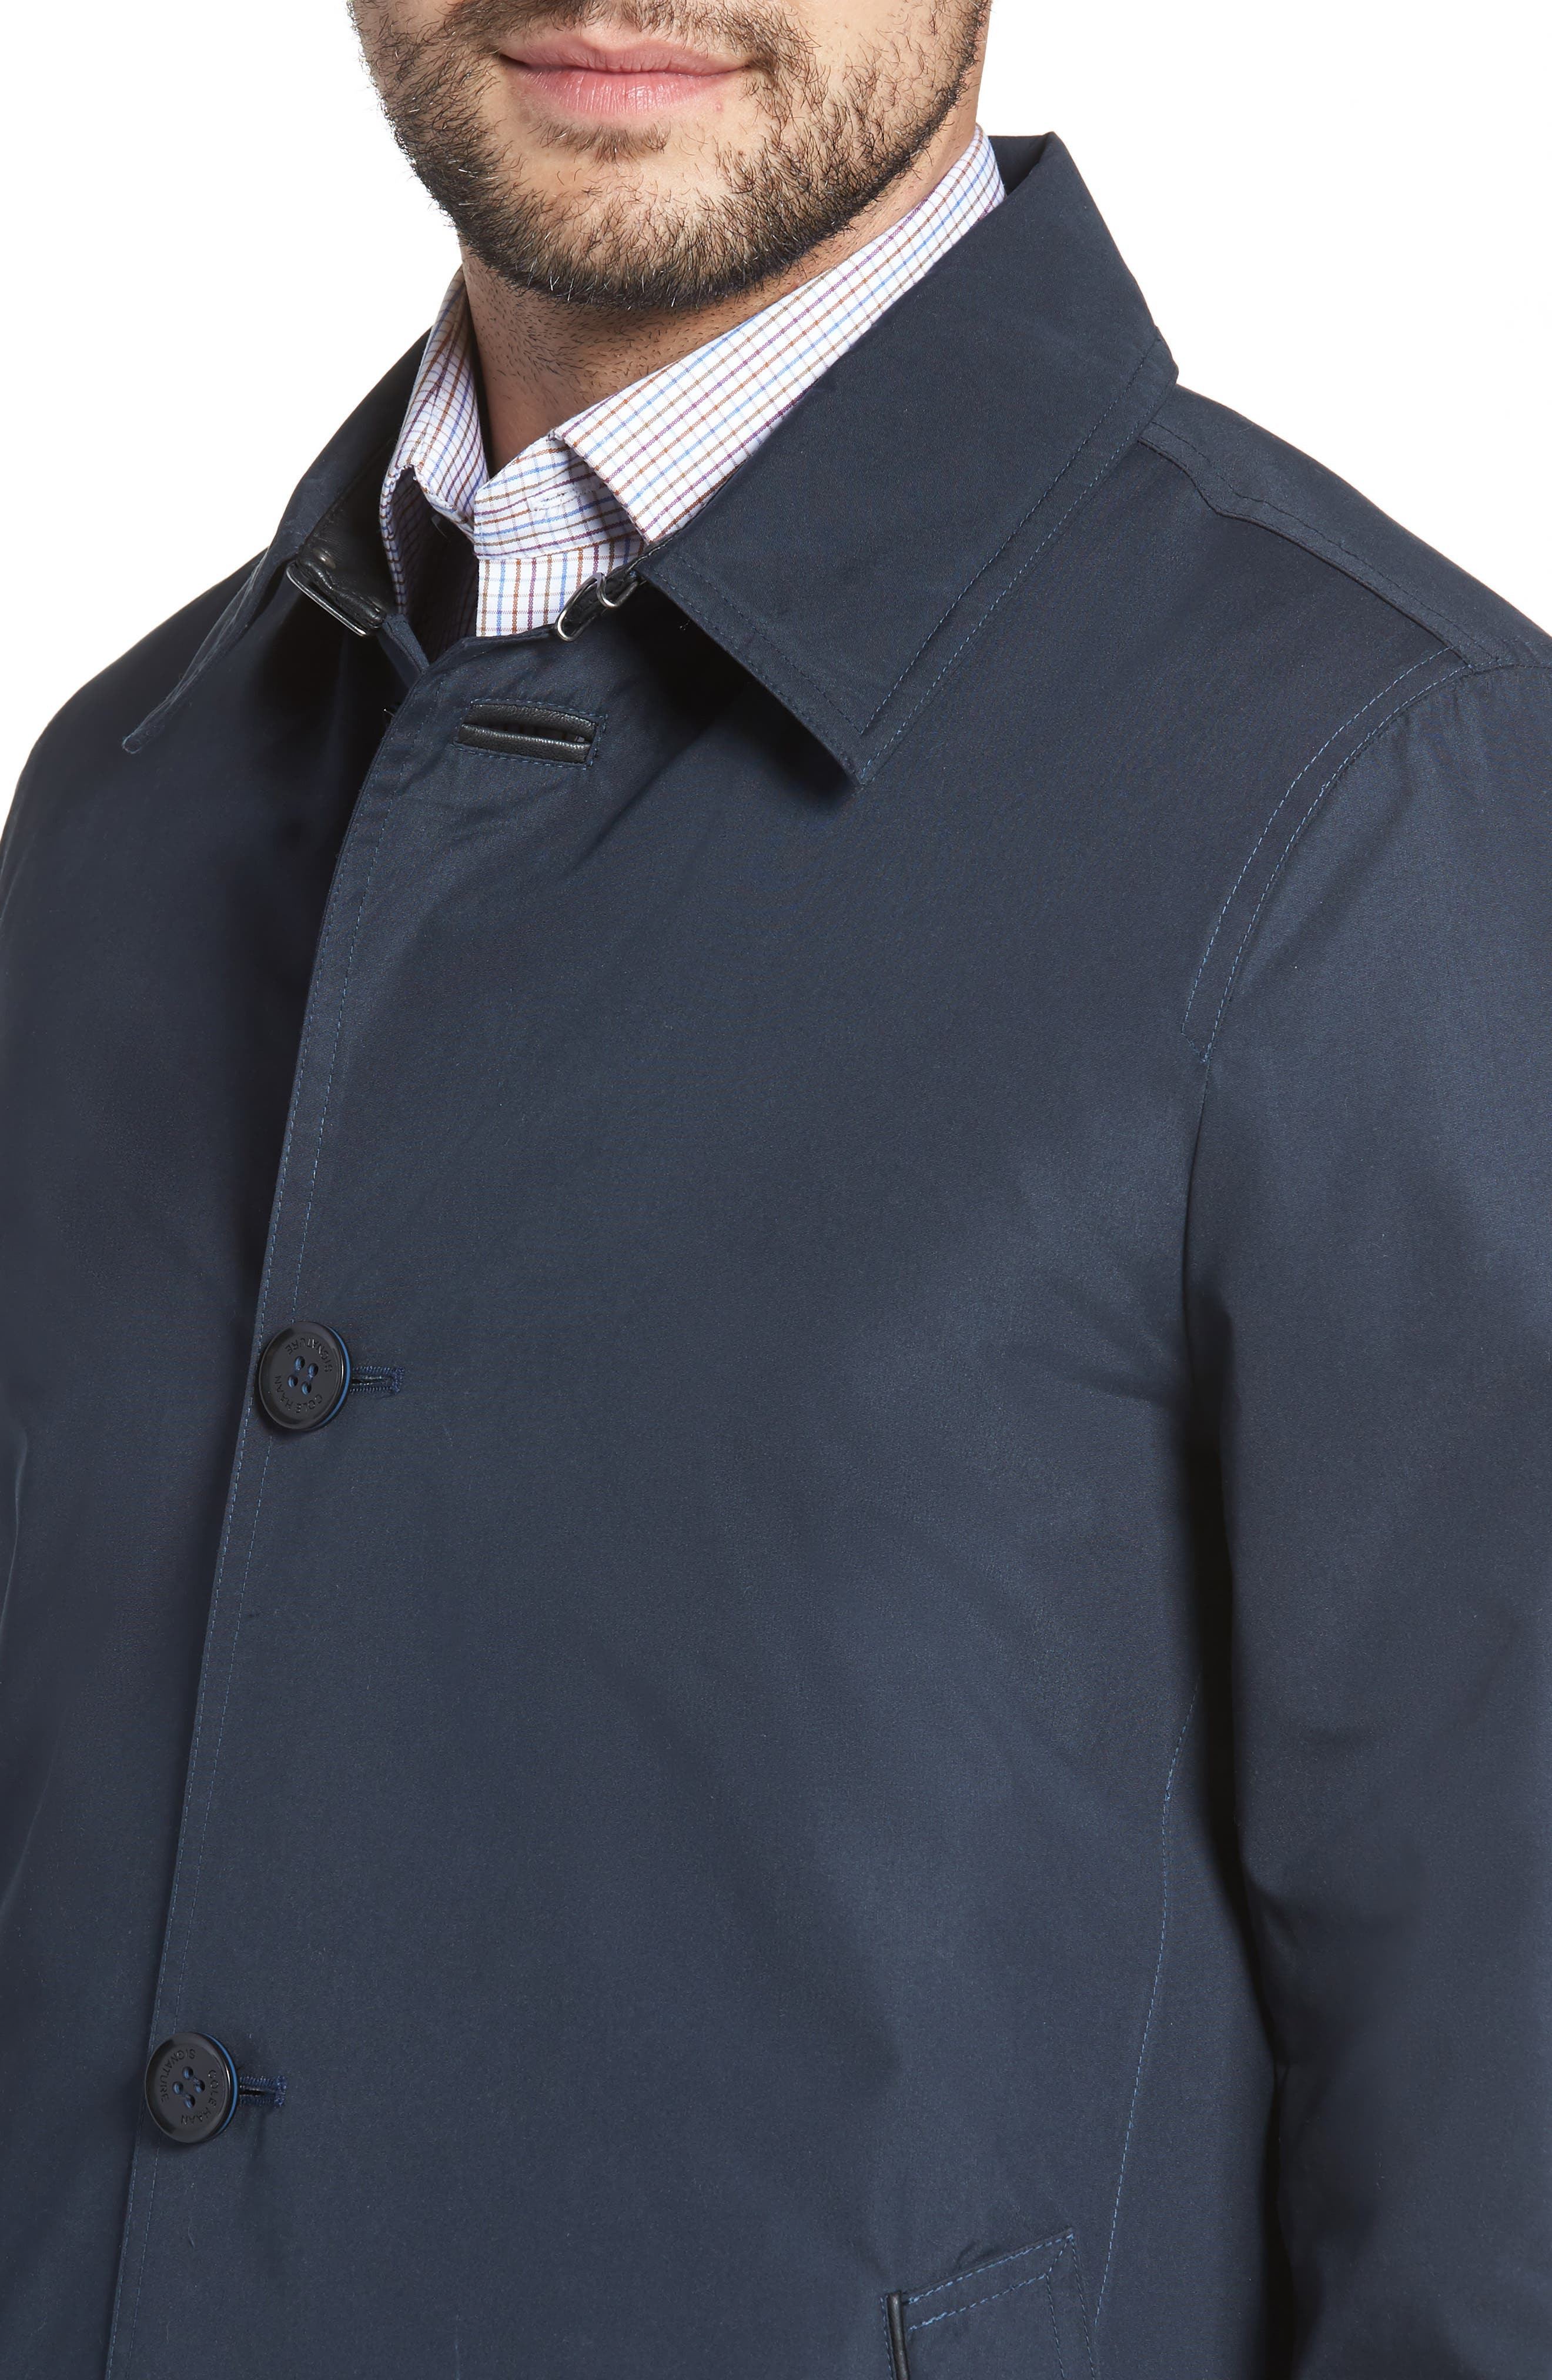 Cole Haan Water Resistant Car Coat,                             Alternate thumbnail 4, color,                             410